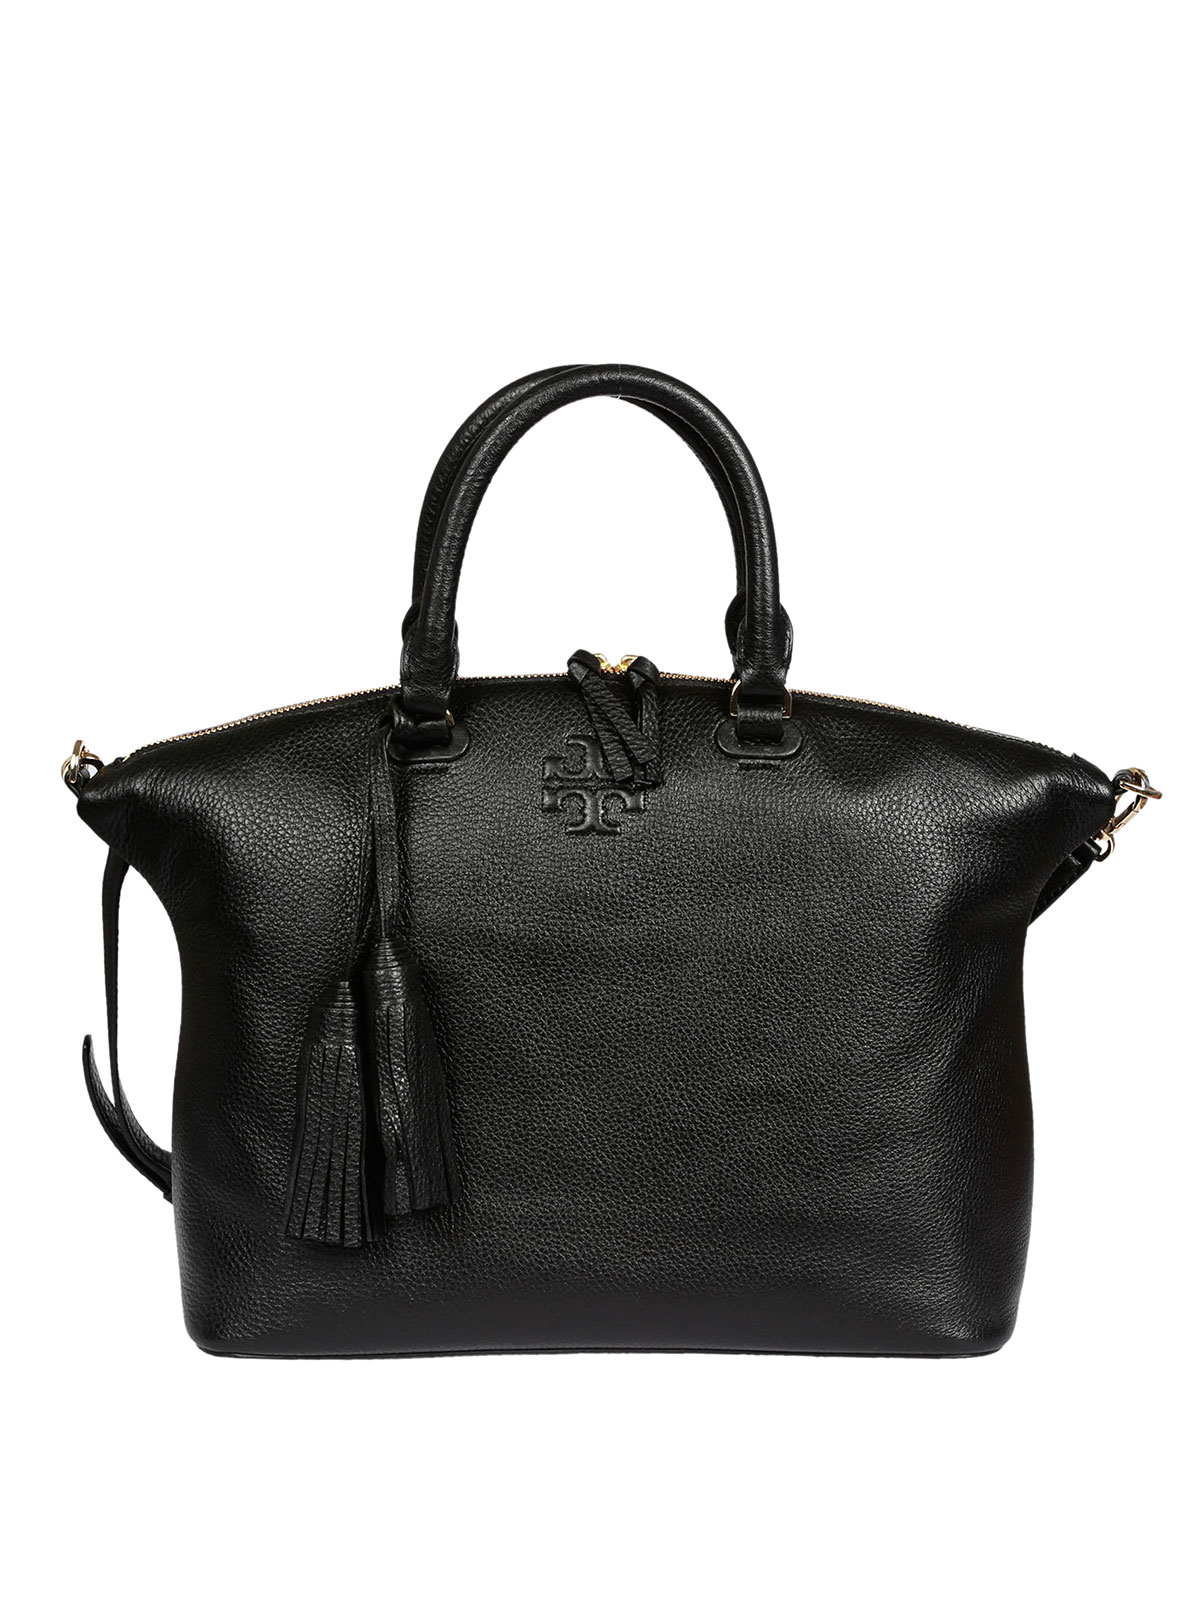 eae905a4926 Thea Medium leather shopping bag by Tory Burch - totes .